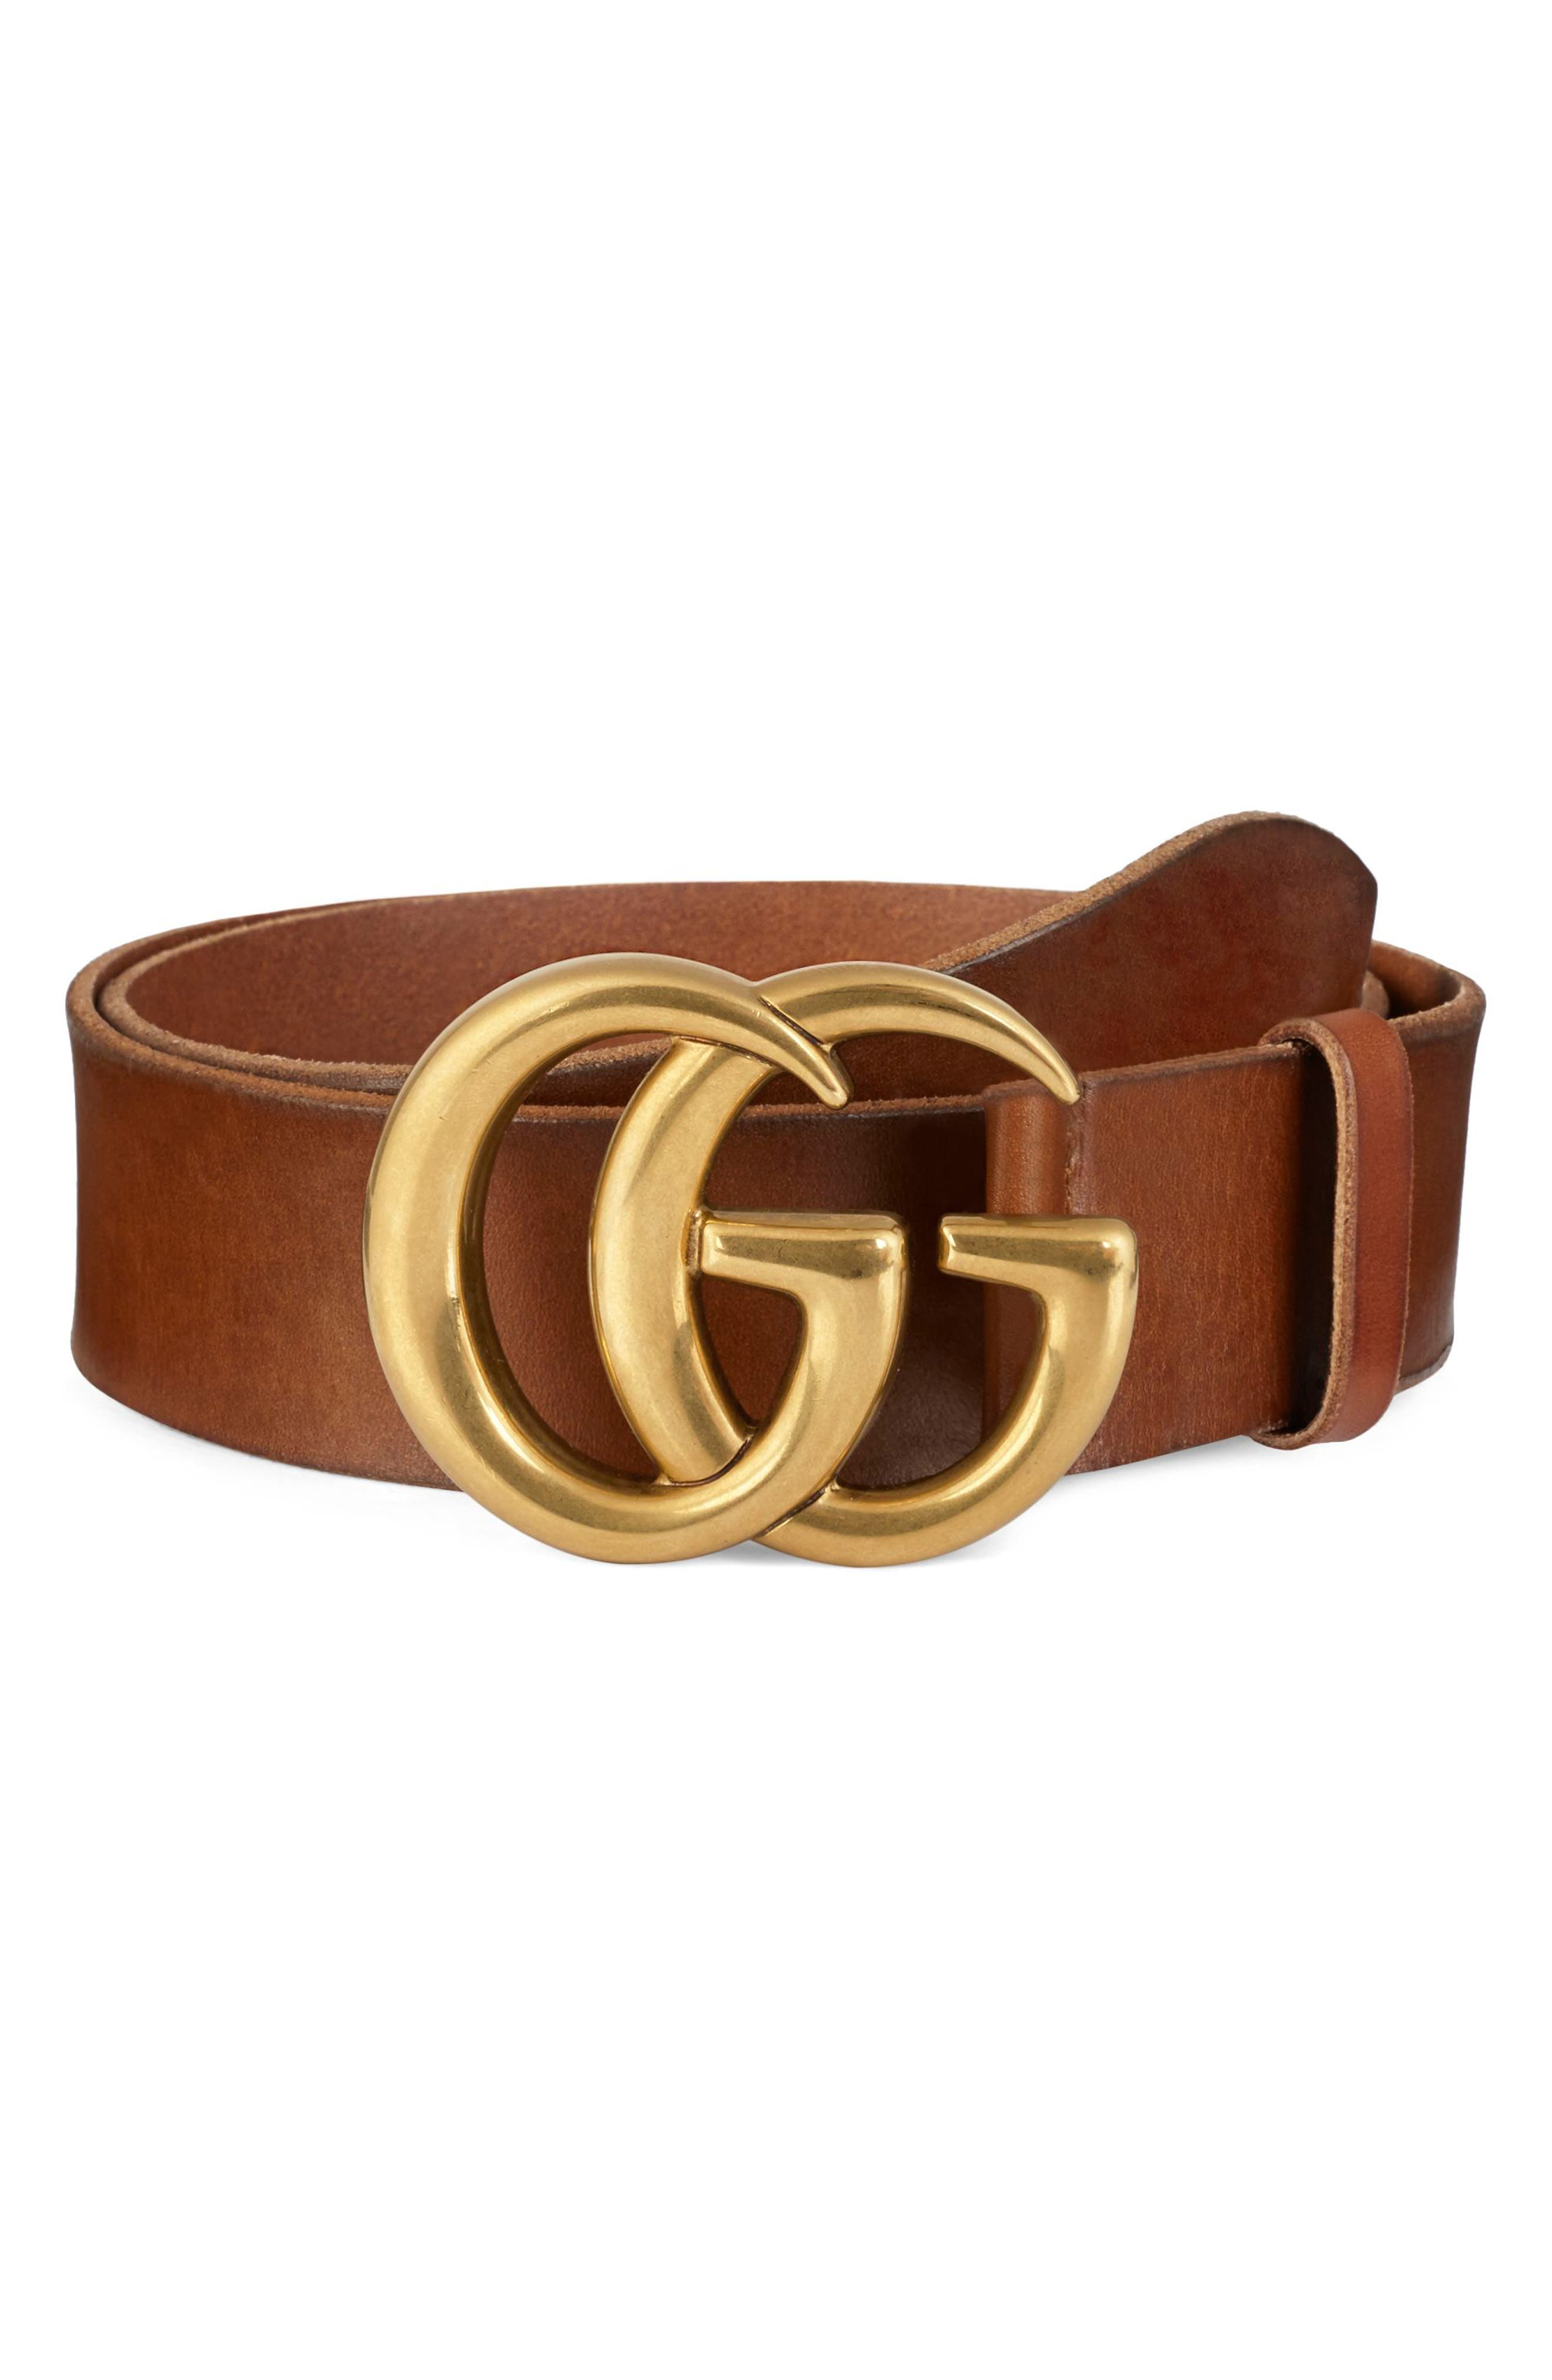 Main Image - Gucci Running Gold Leather Belt